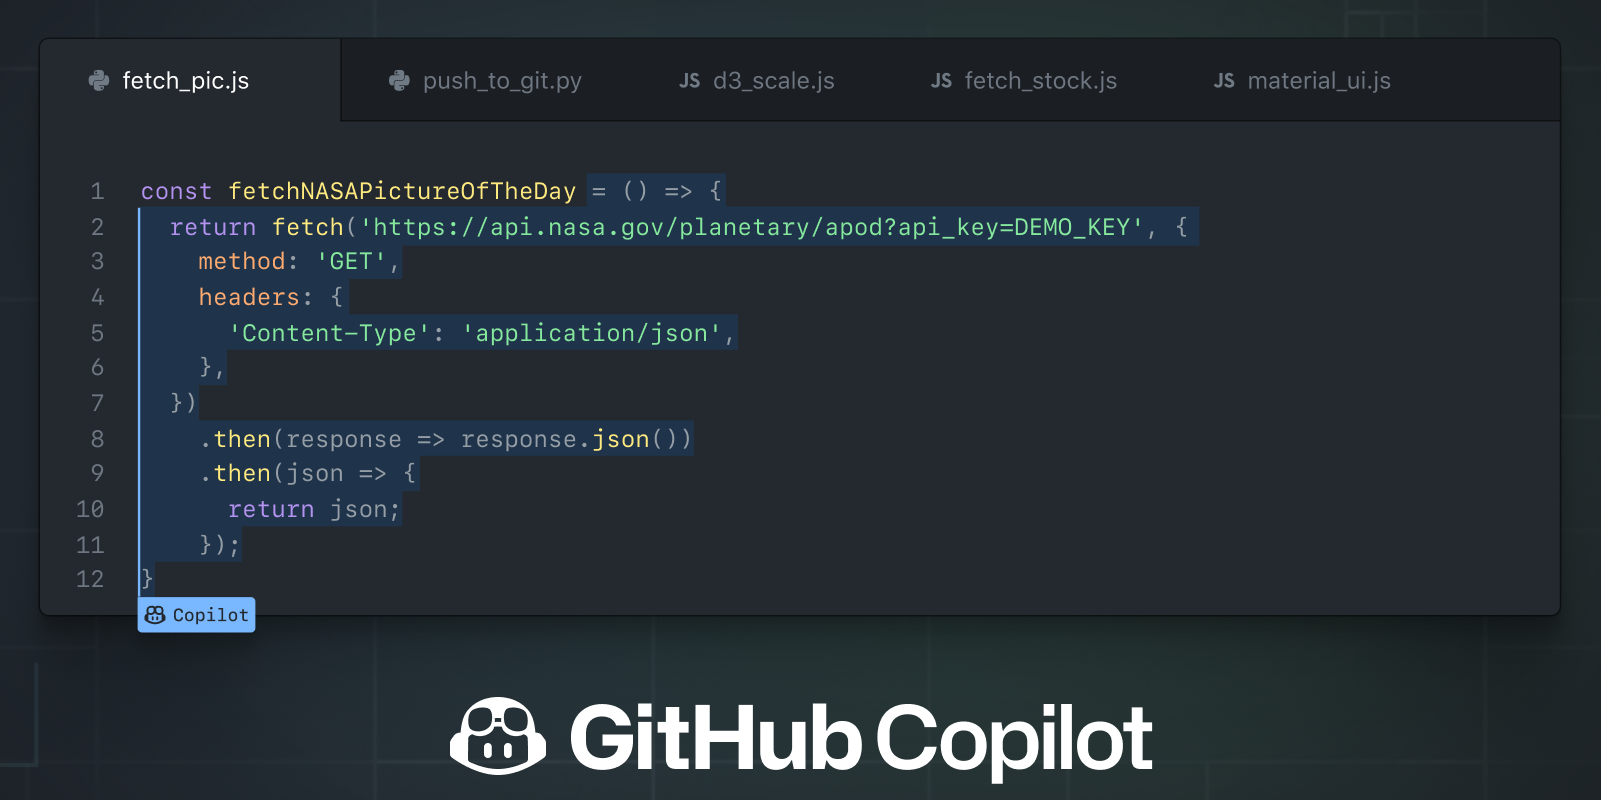 GitHub launches Copilot to power pair programming with AI | VentureBeat